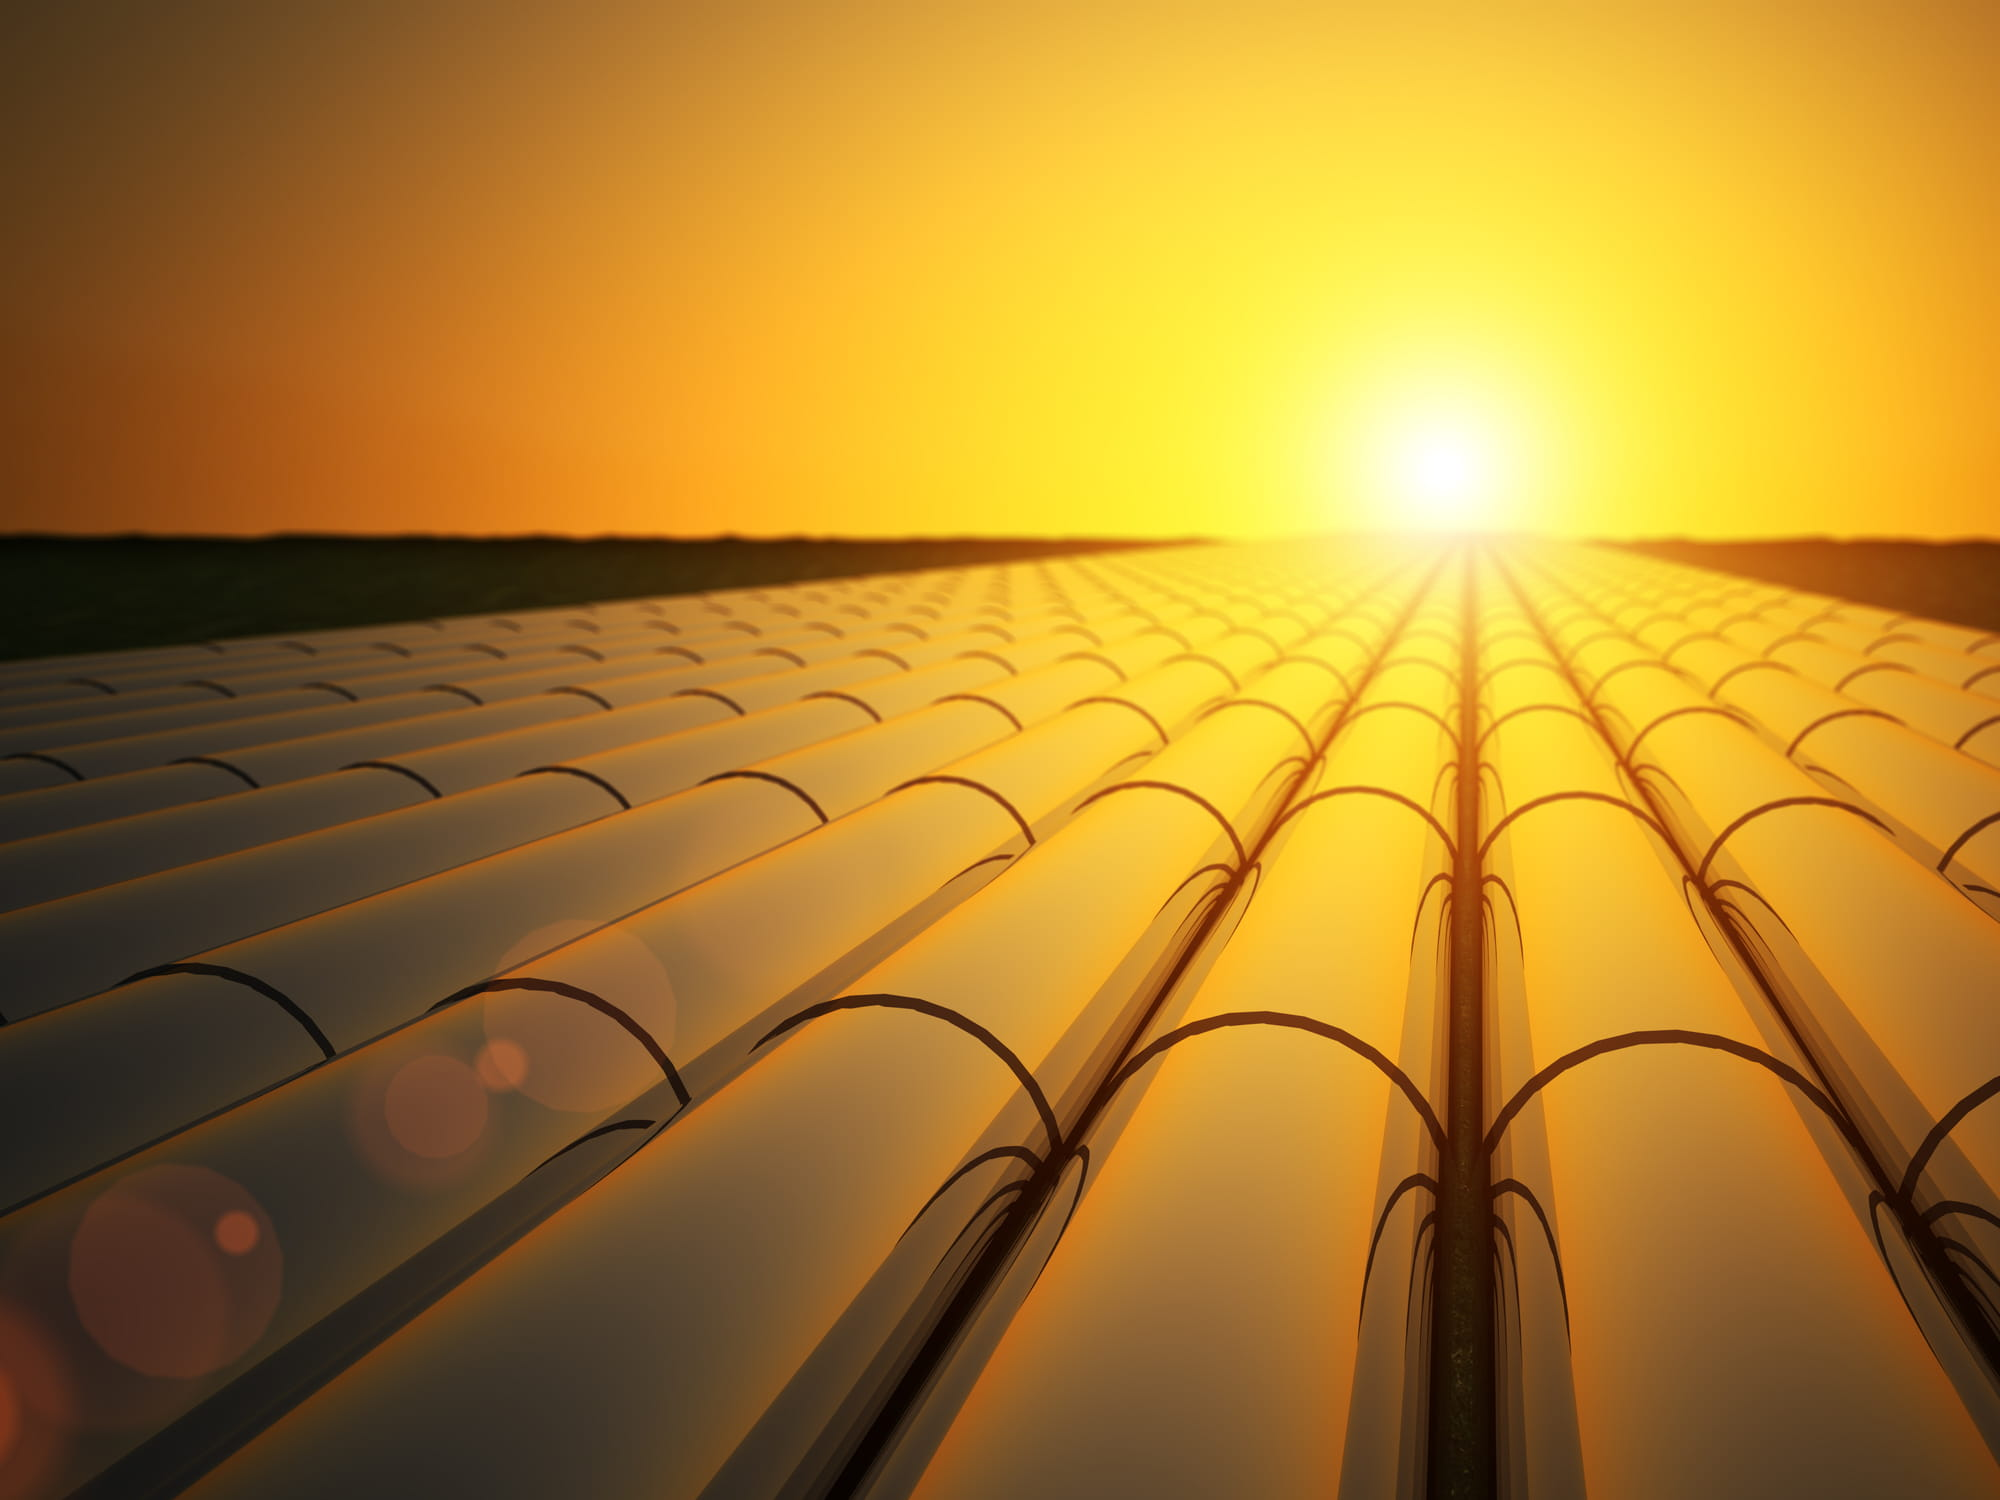 Gas pipelines at sunset